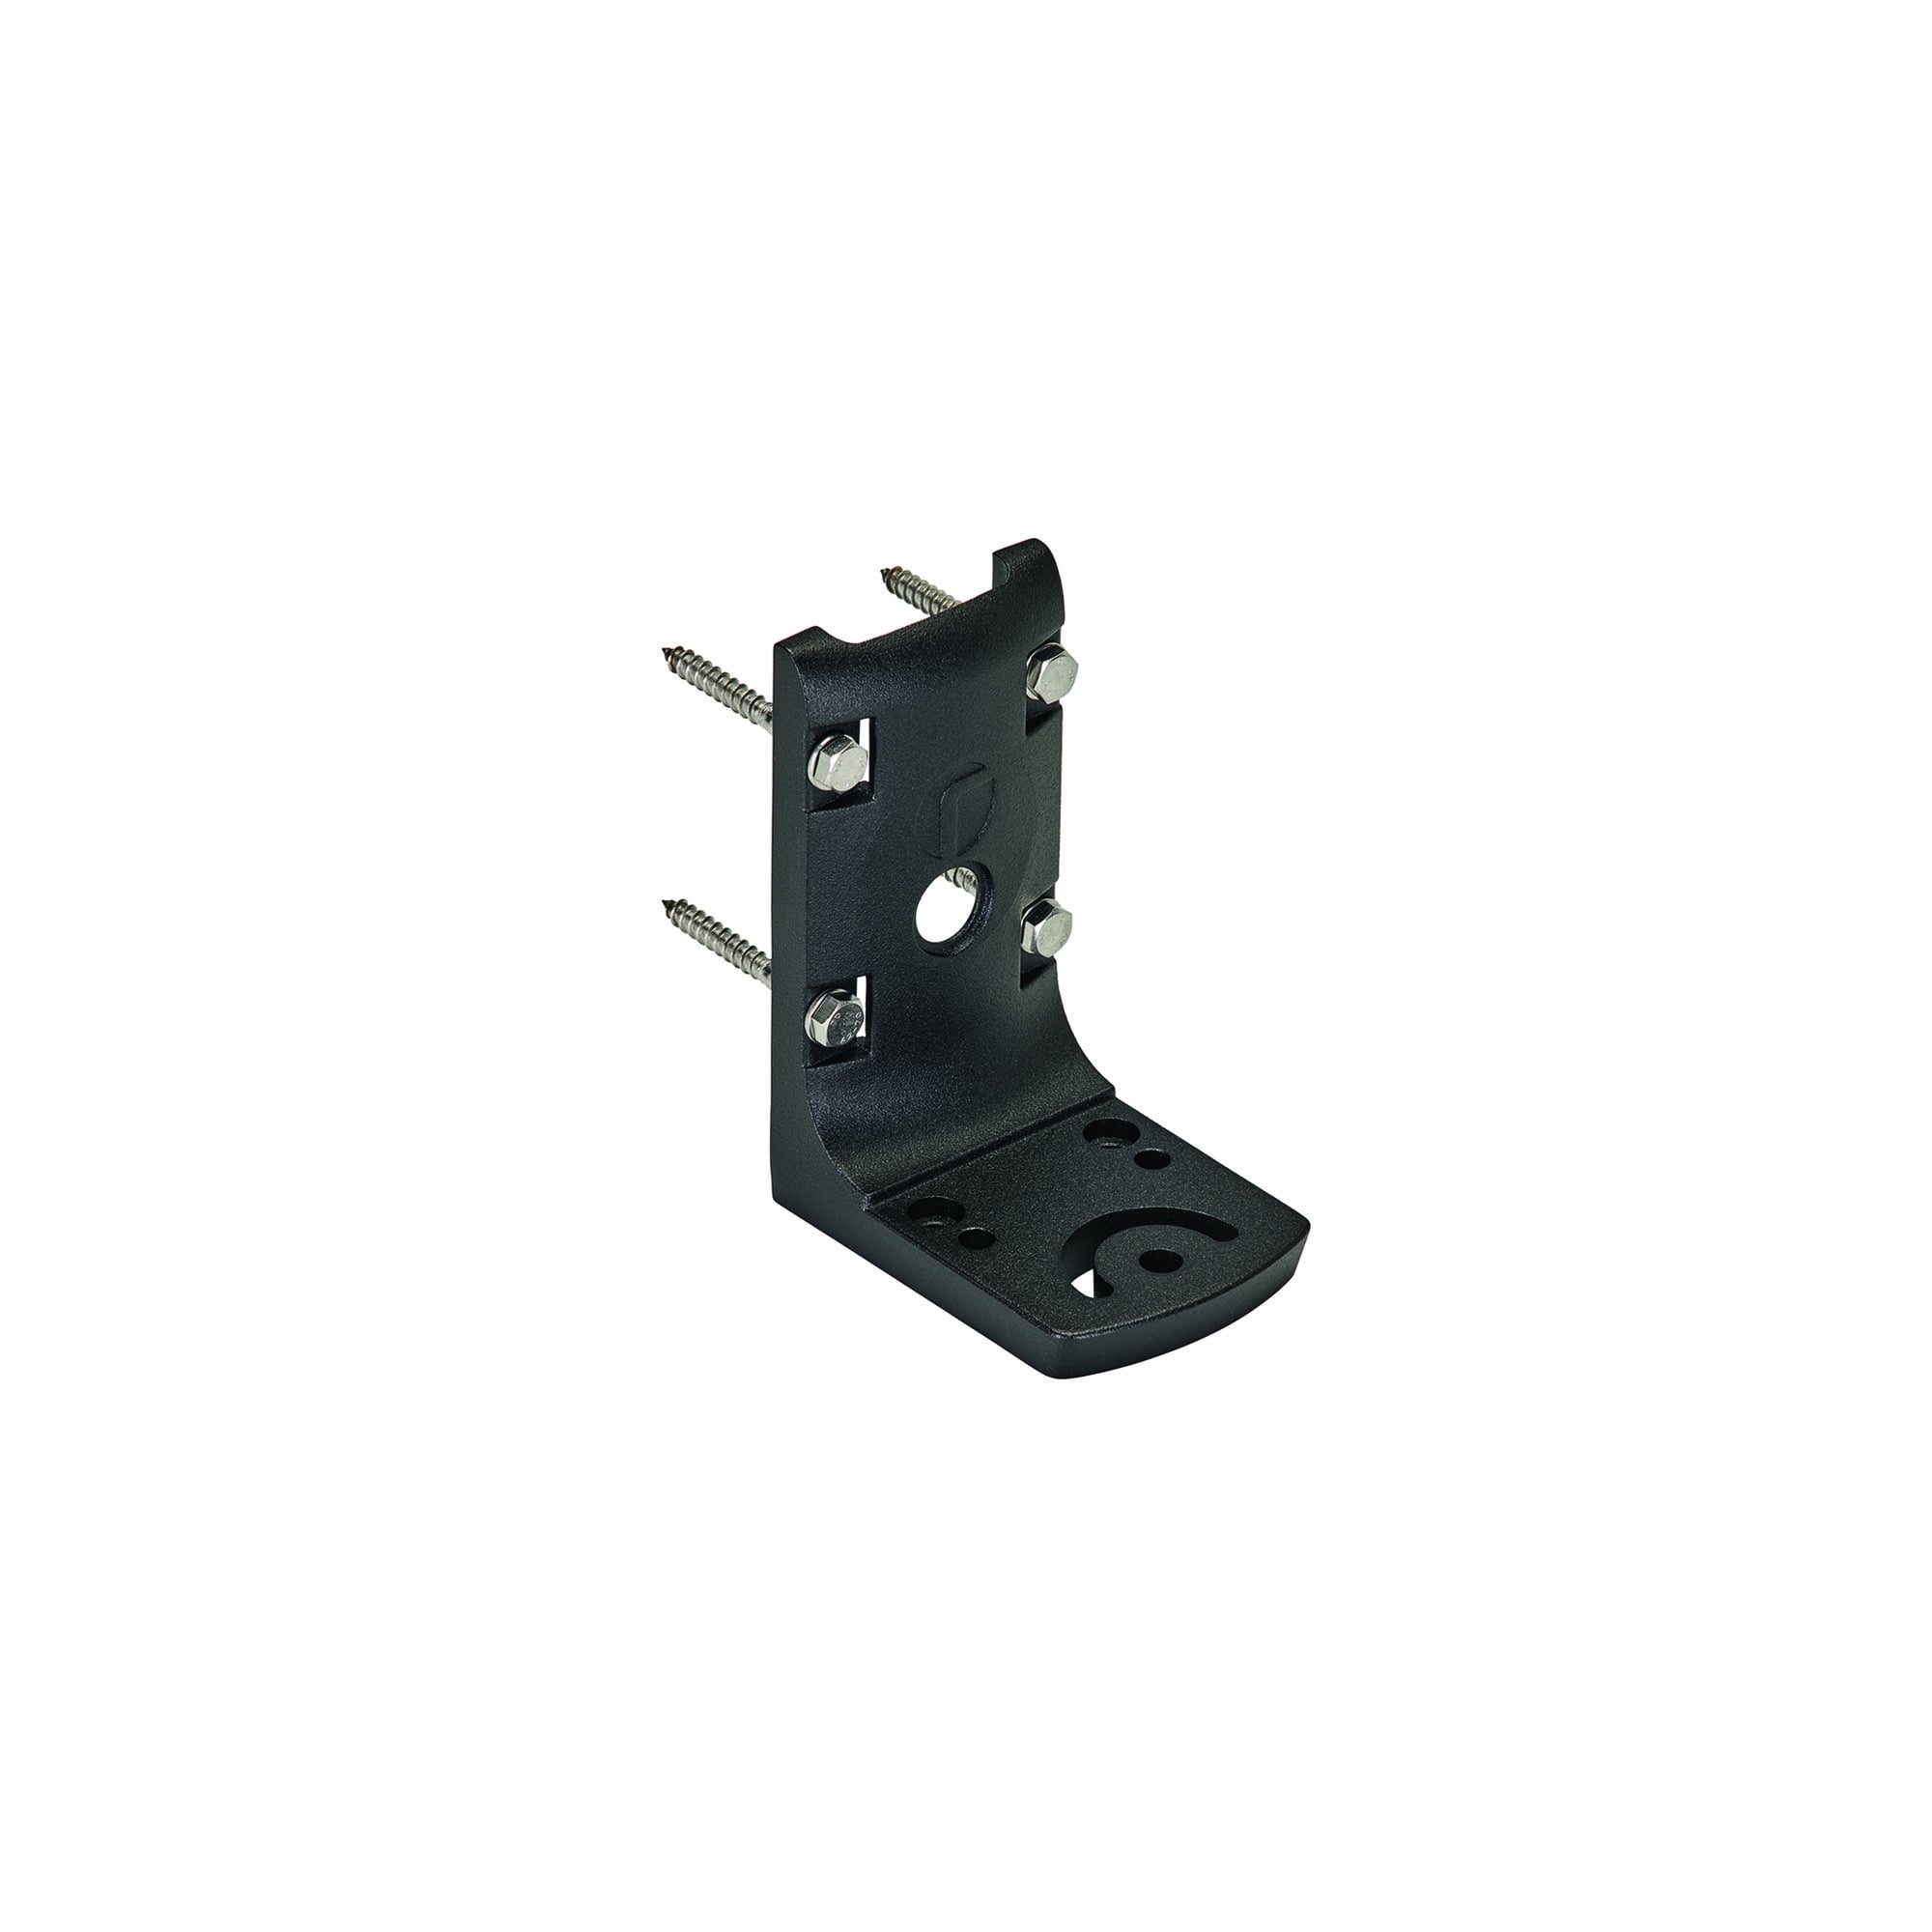 VUB-WALL Bracket